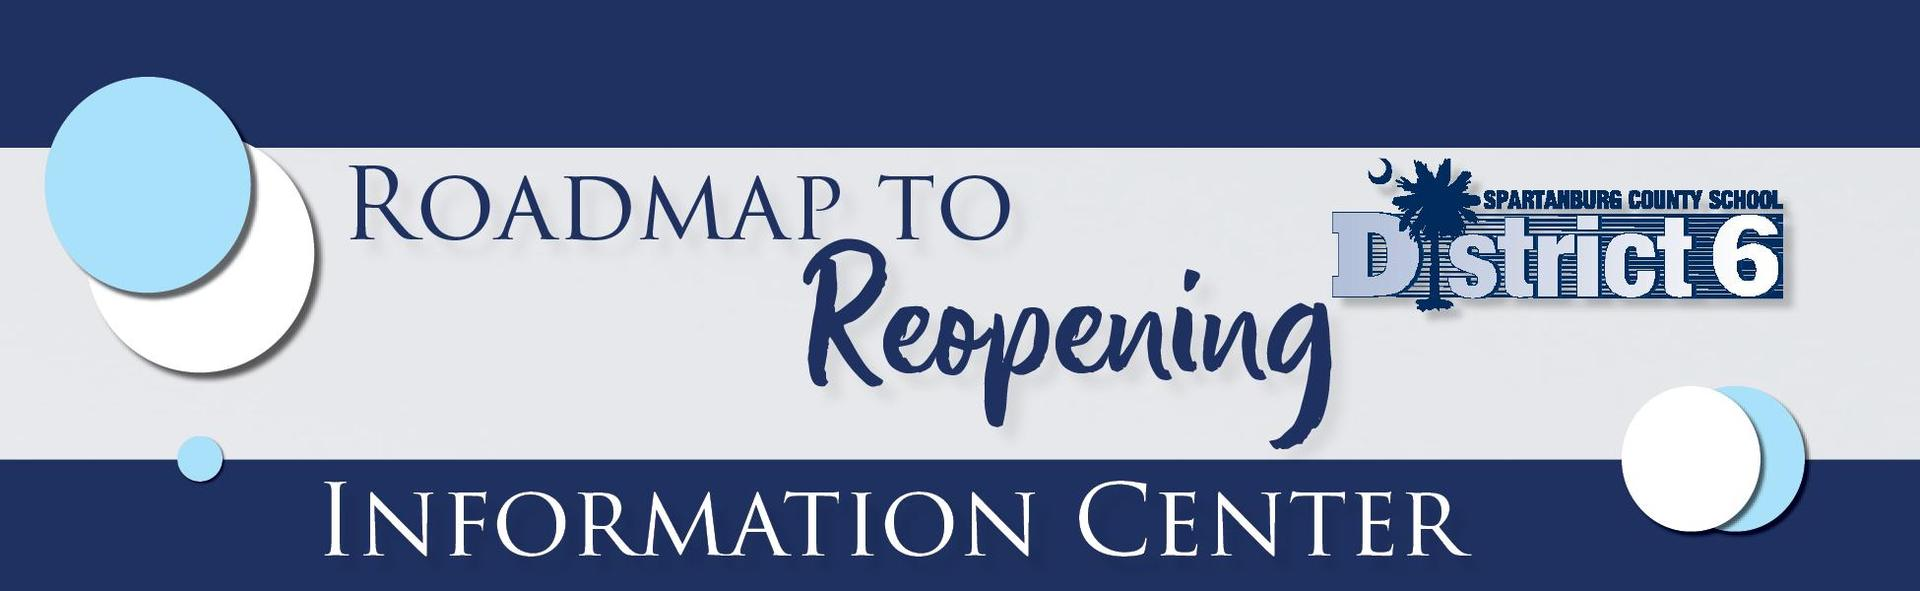 Roadmap to reopening information center